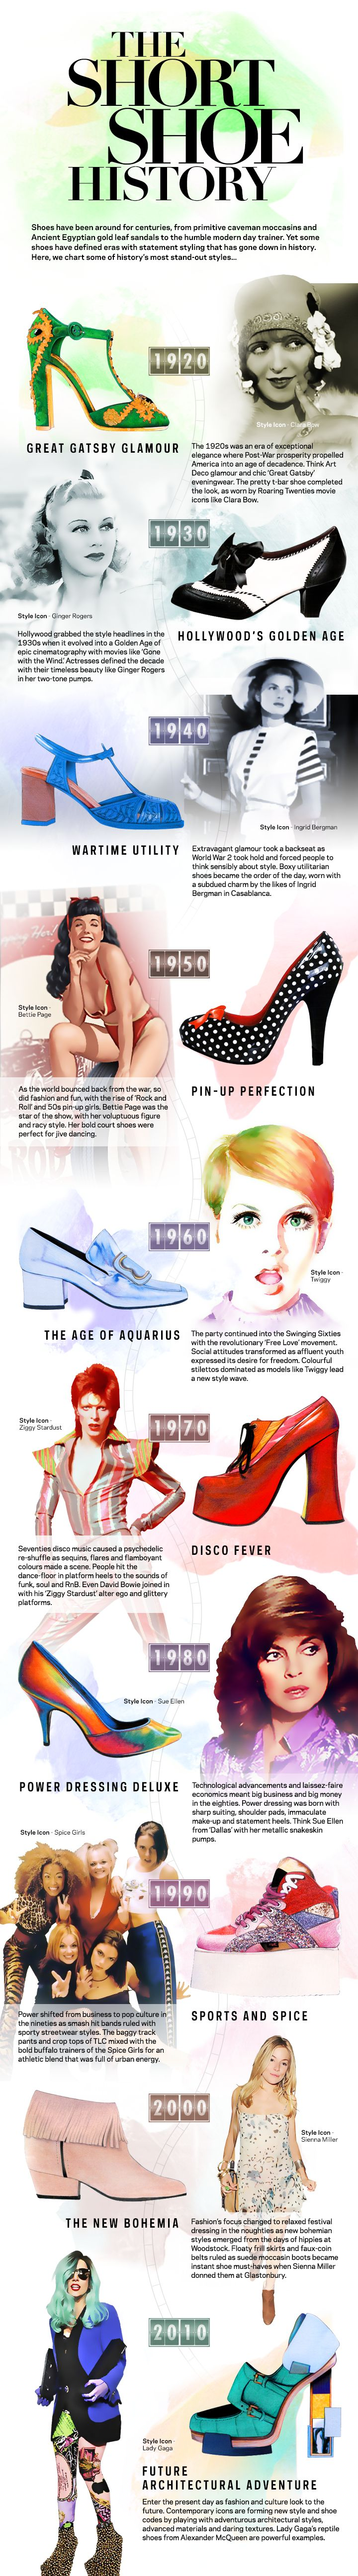 The Short Shoe History #infographic